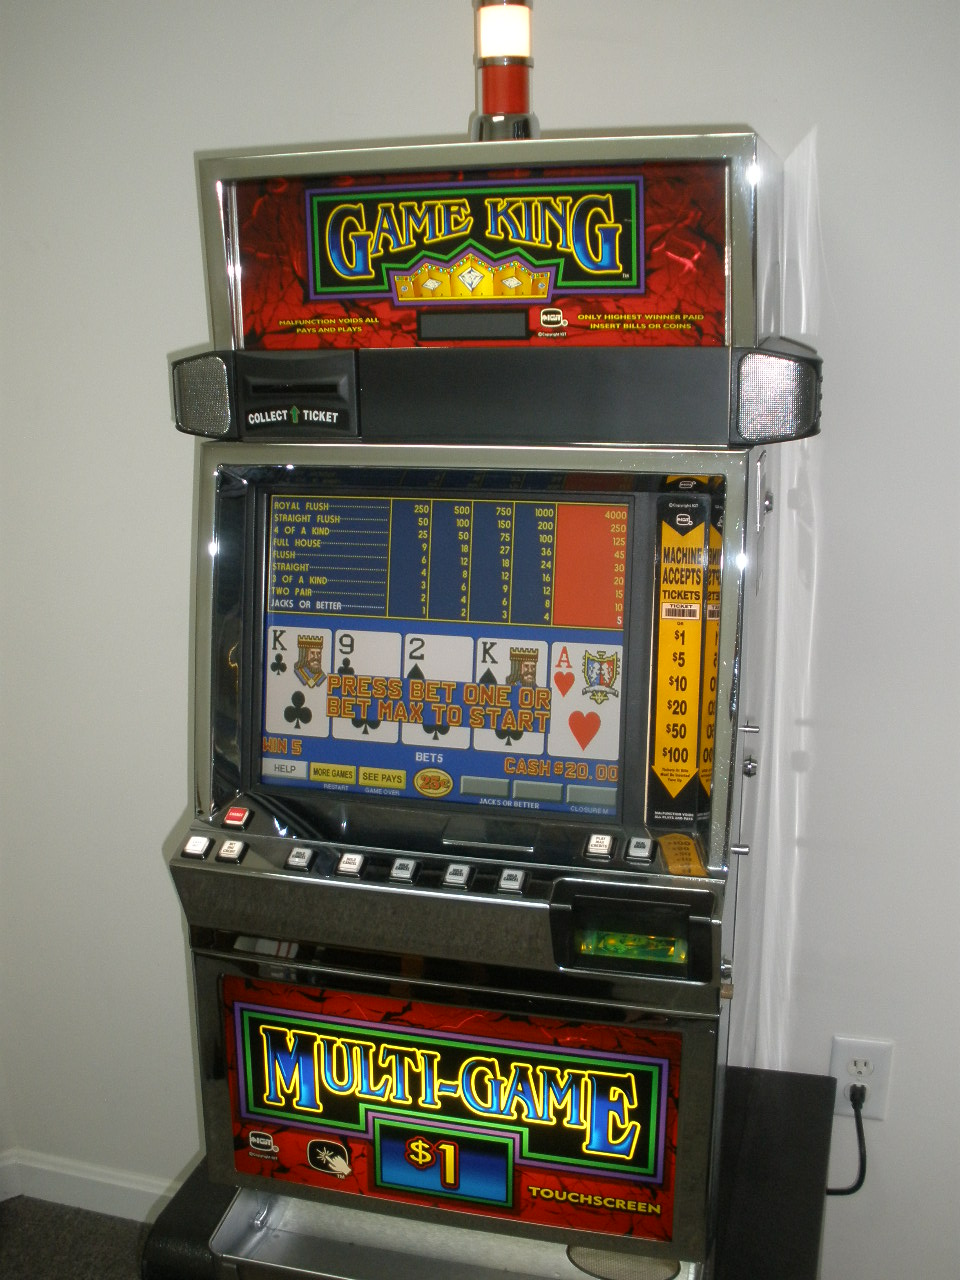 IGT GAME KING 4.3 VIDEO POKER MULTI GAME with LCD